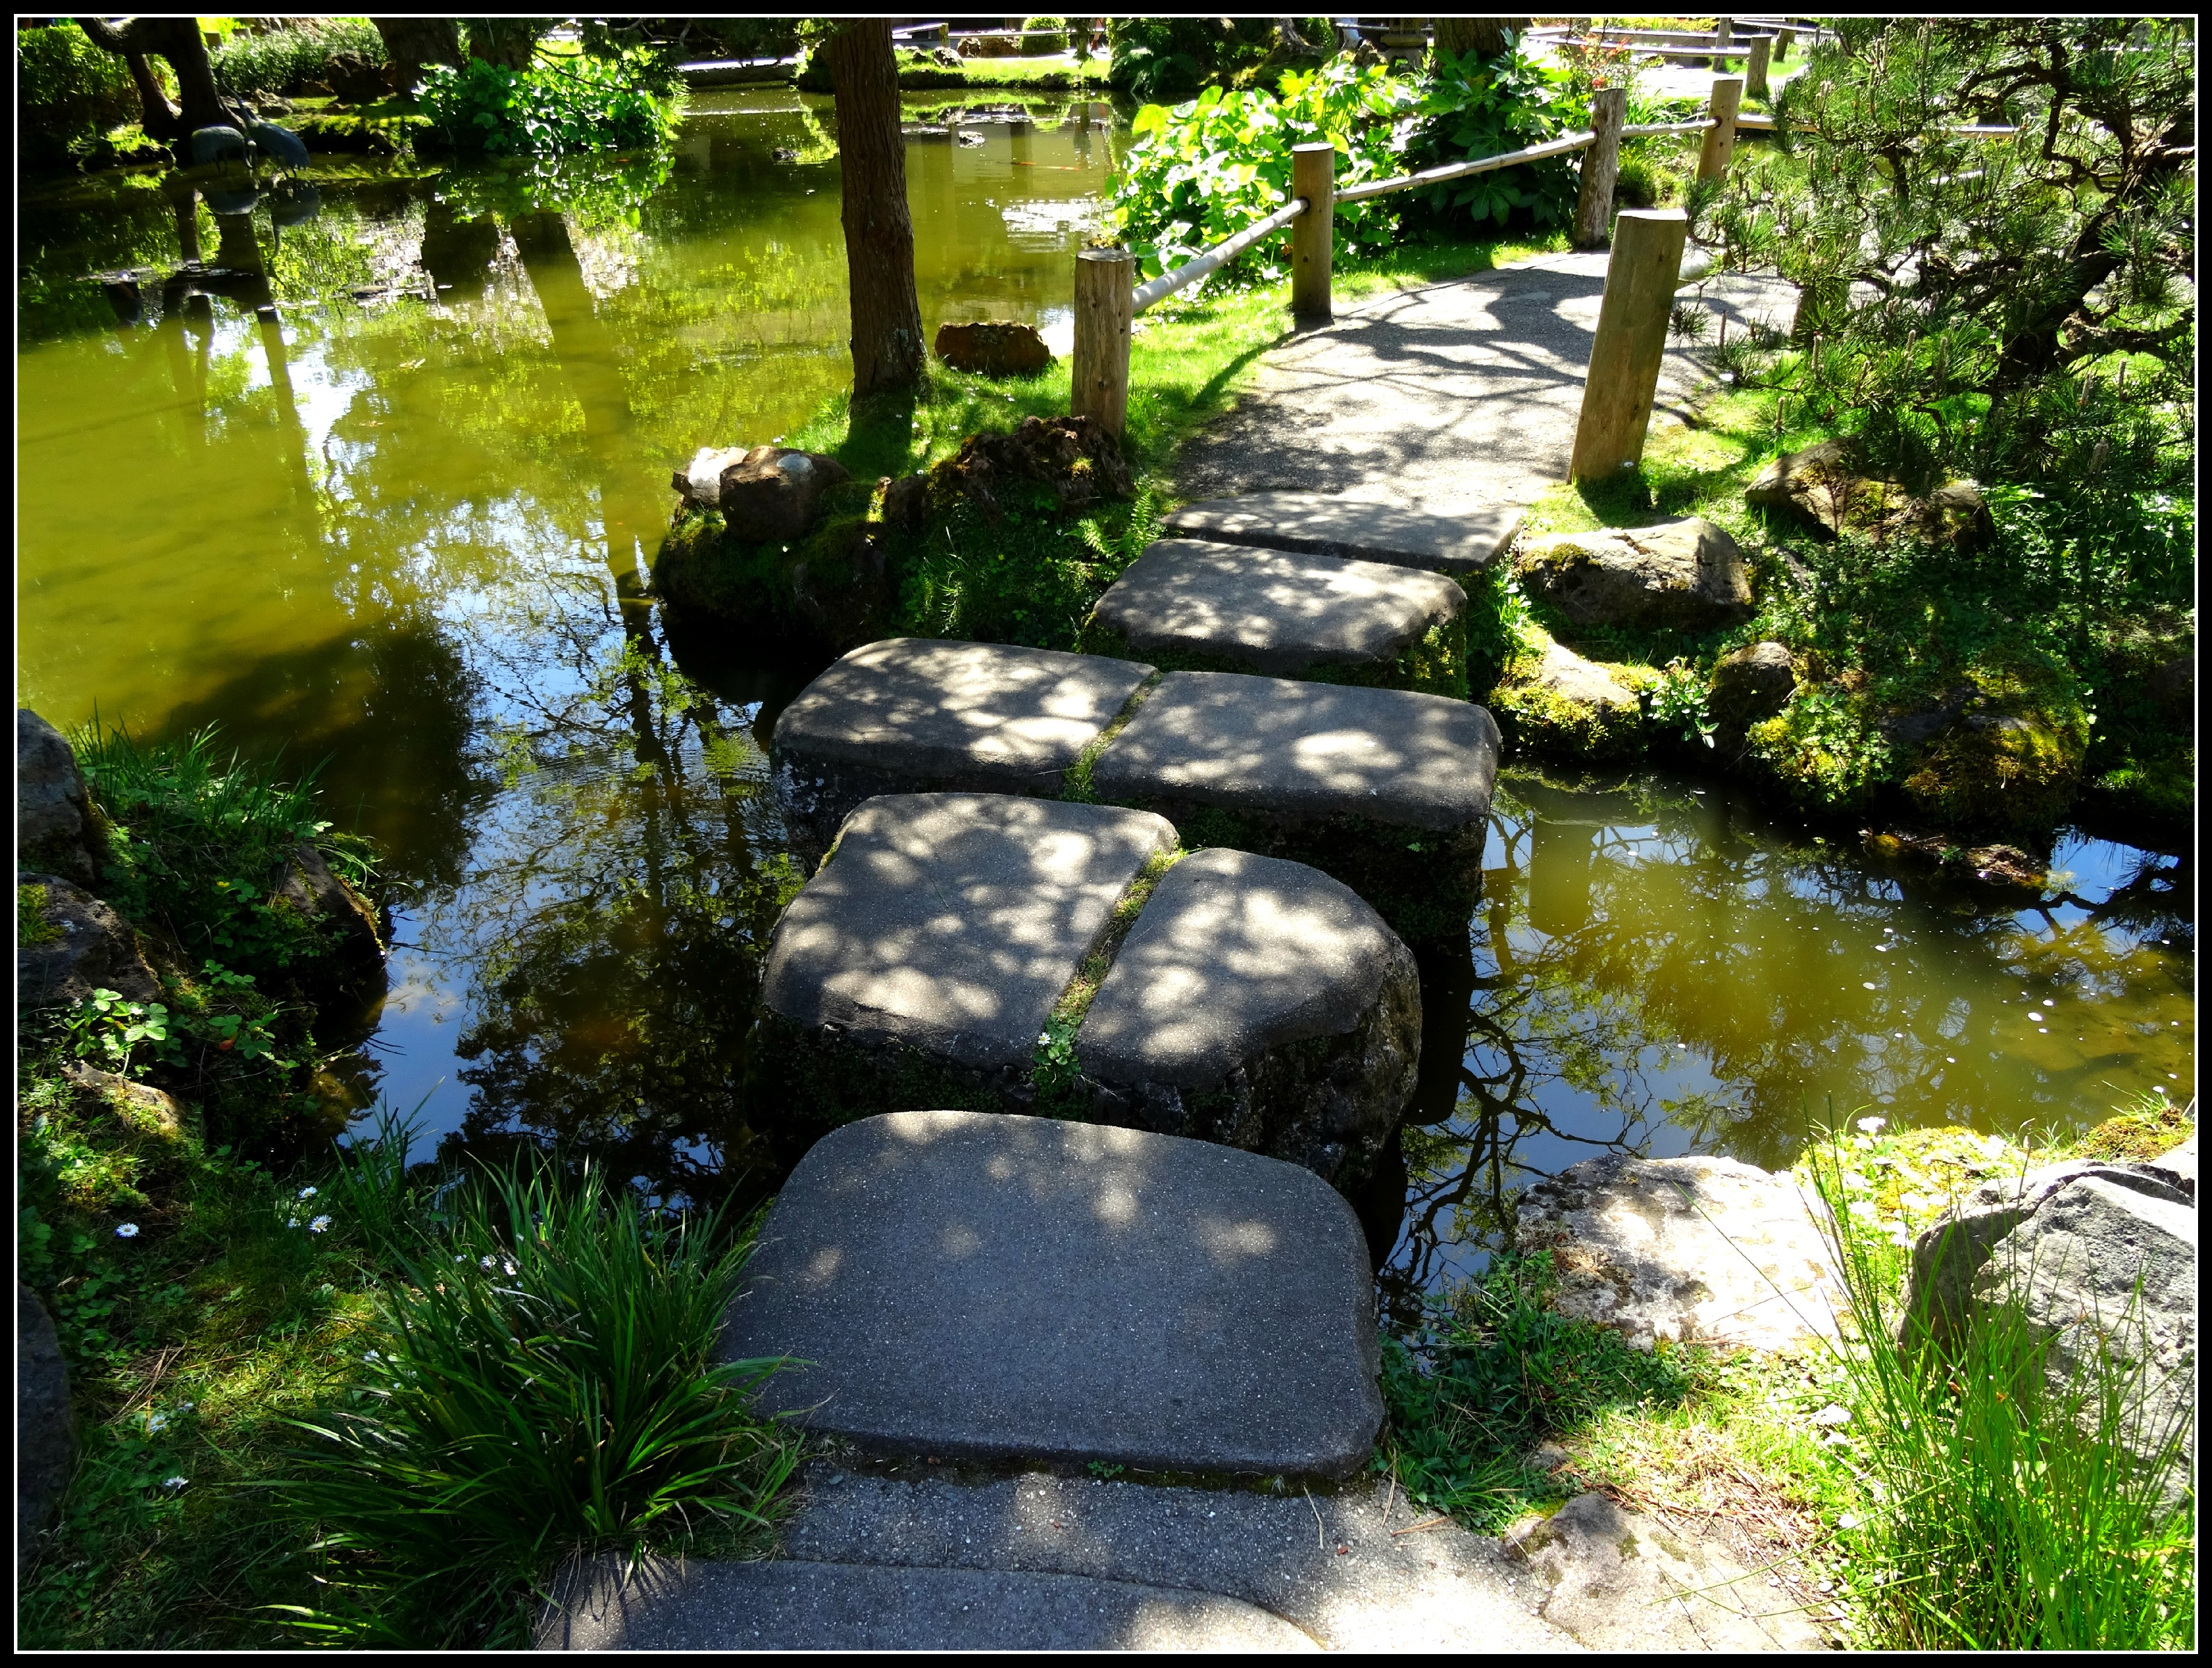 Expand Your Senses In The Japanese Gardens On The West Coast The World As I See It